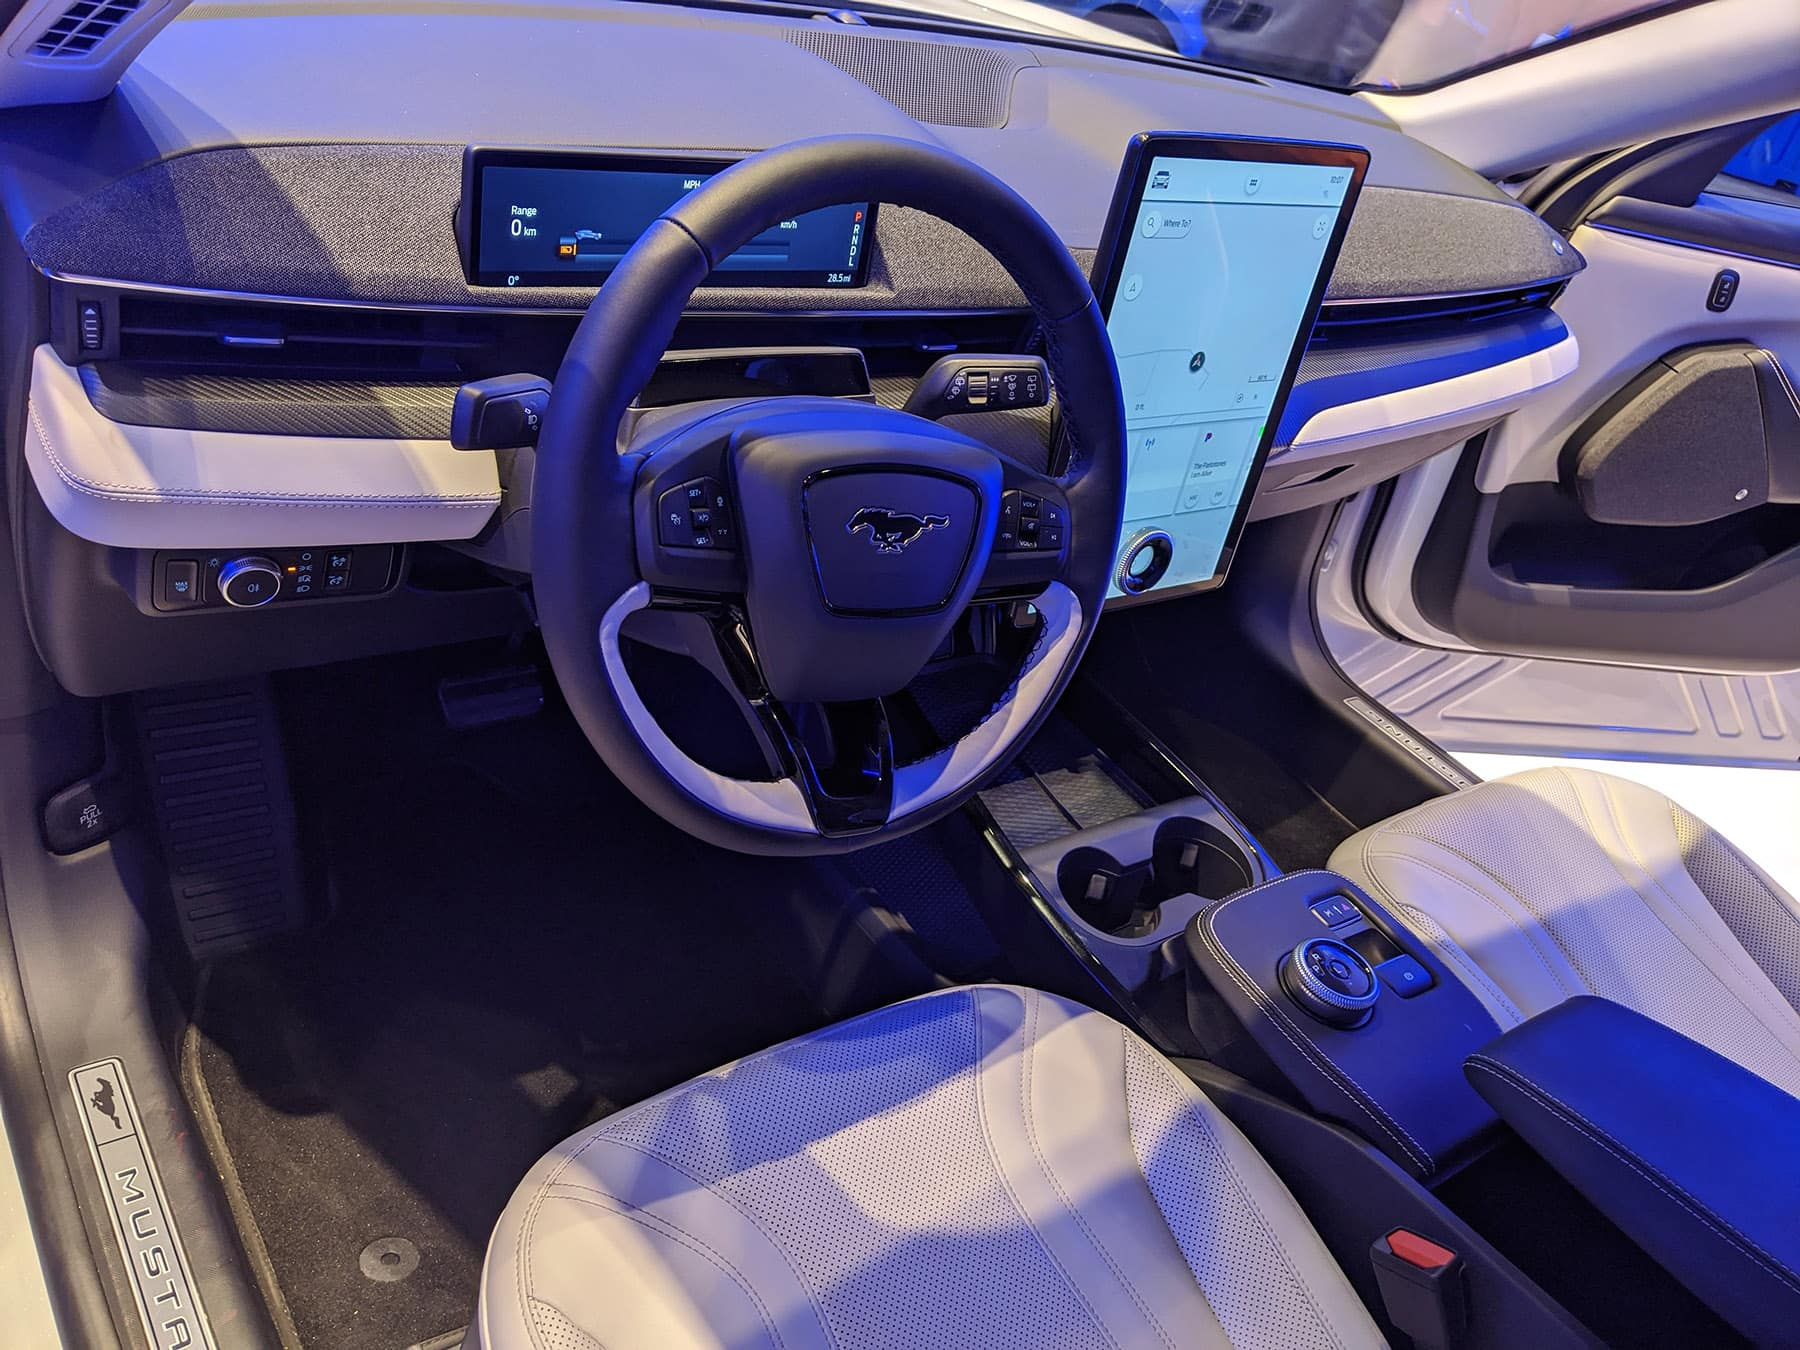 2021 Mustang Mach-E front interior at the 2020 Chicago Auto Show